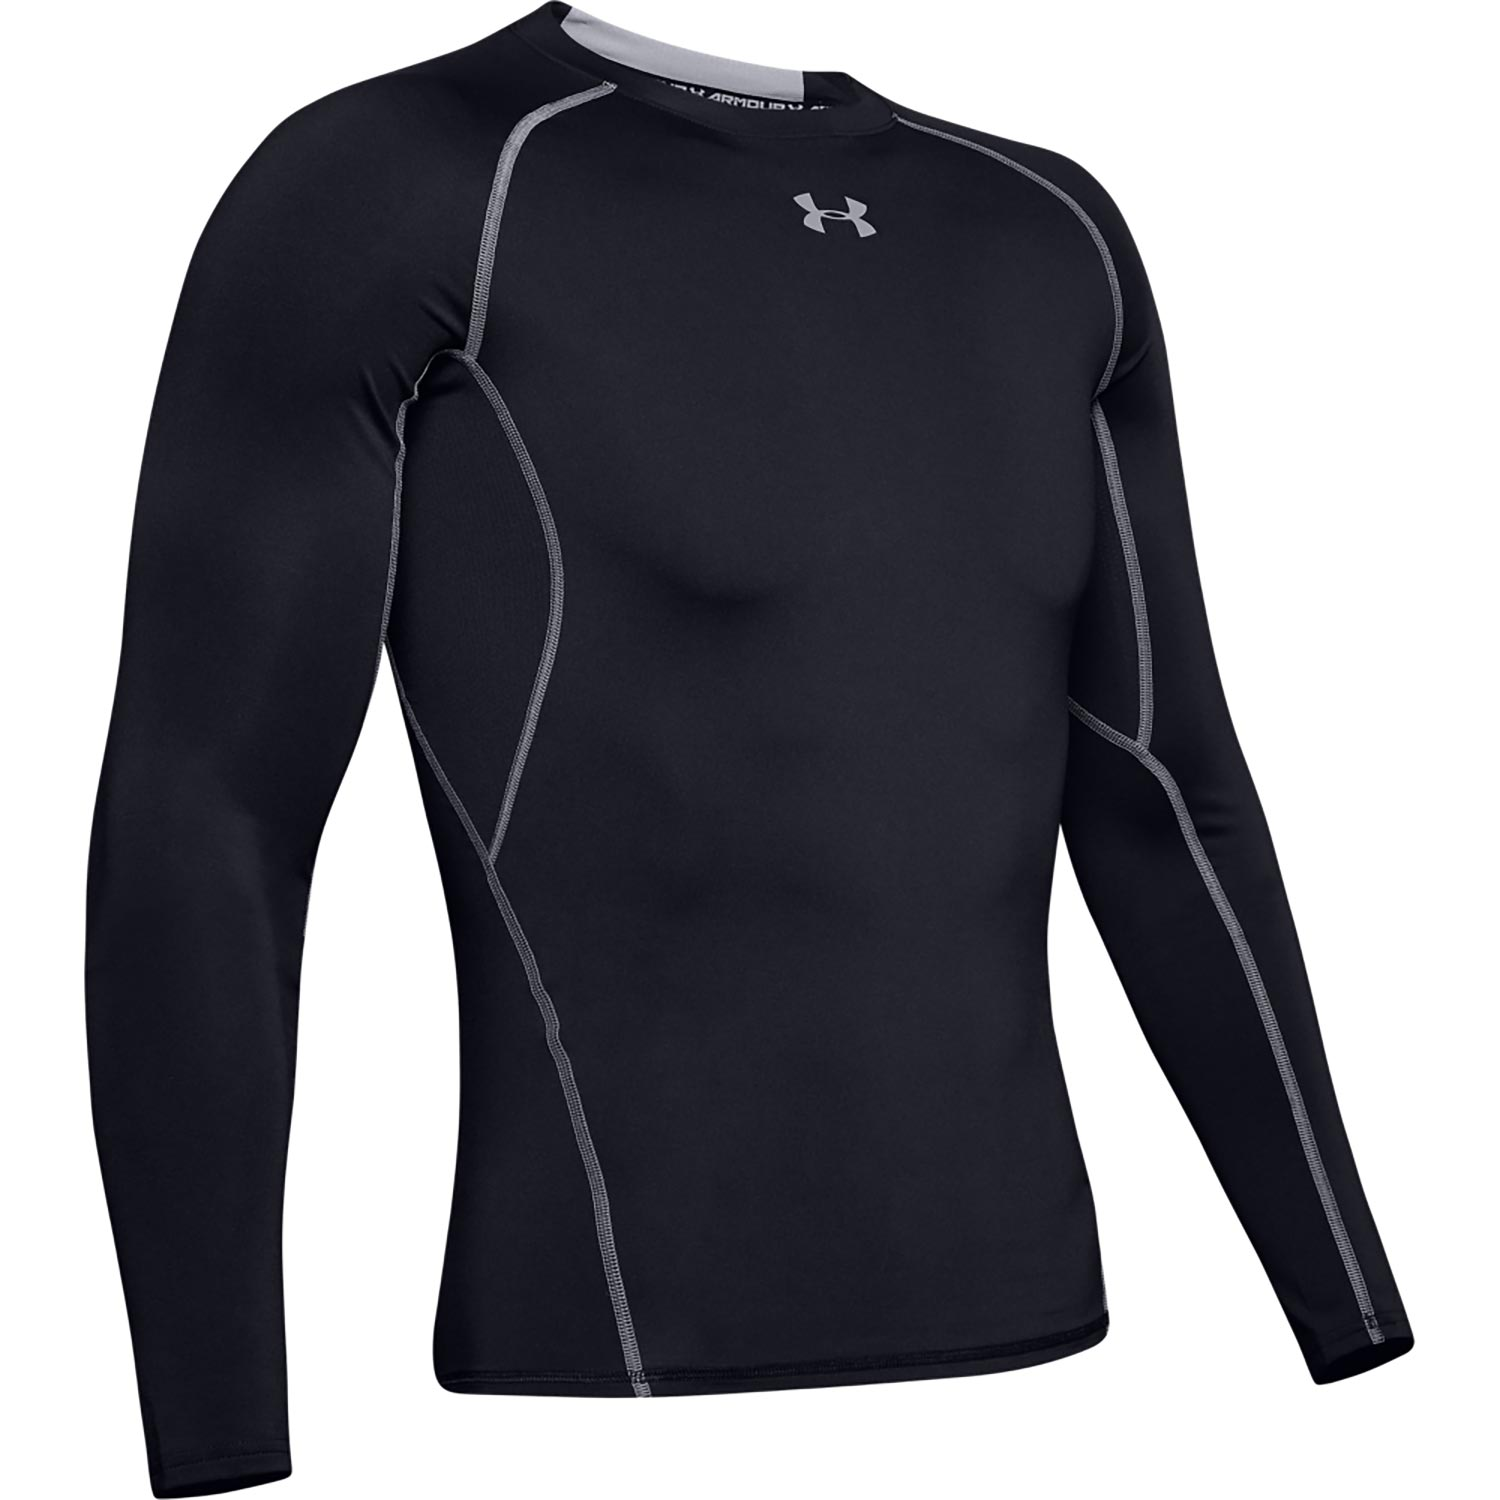 Under Armour Men's HeatGear Compression Long Sleeve T-Shirt